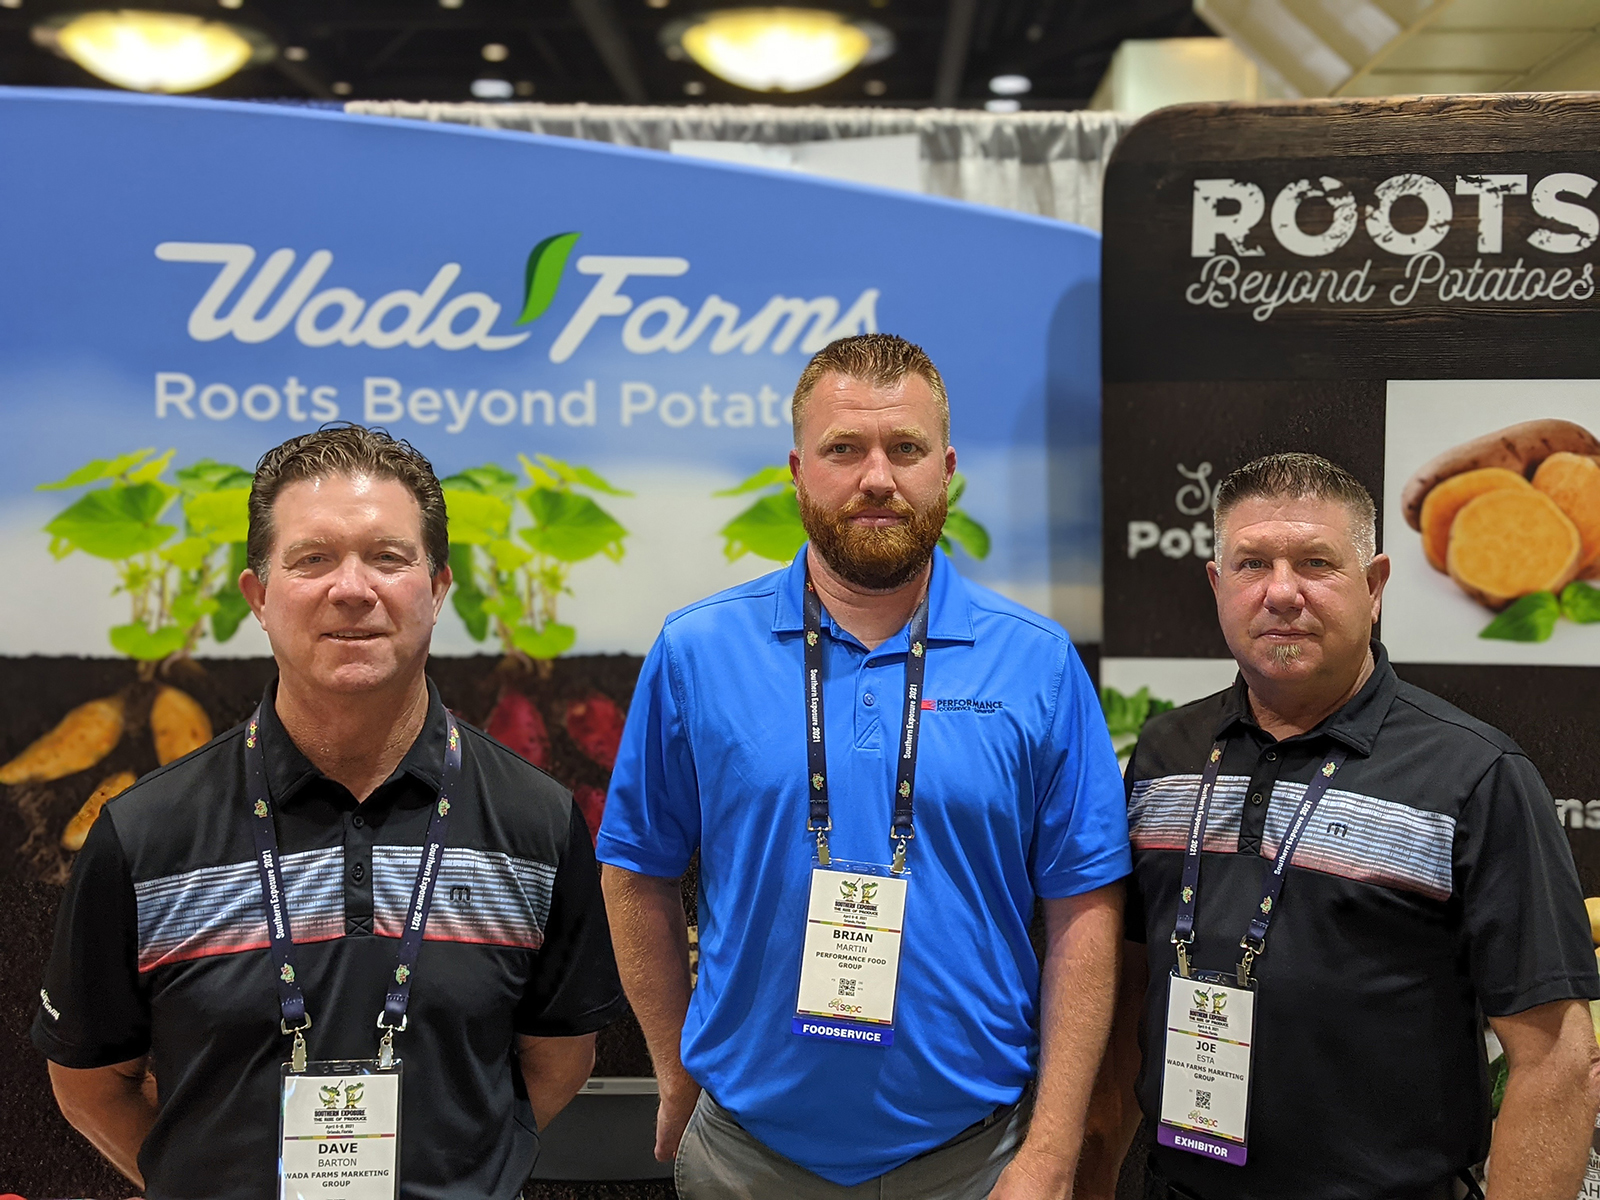 Brian Martin of Performance Food Group flanked by Dave Barton and Joe Esta of Wada Farms.